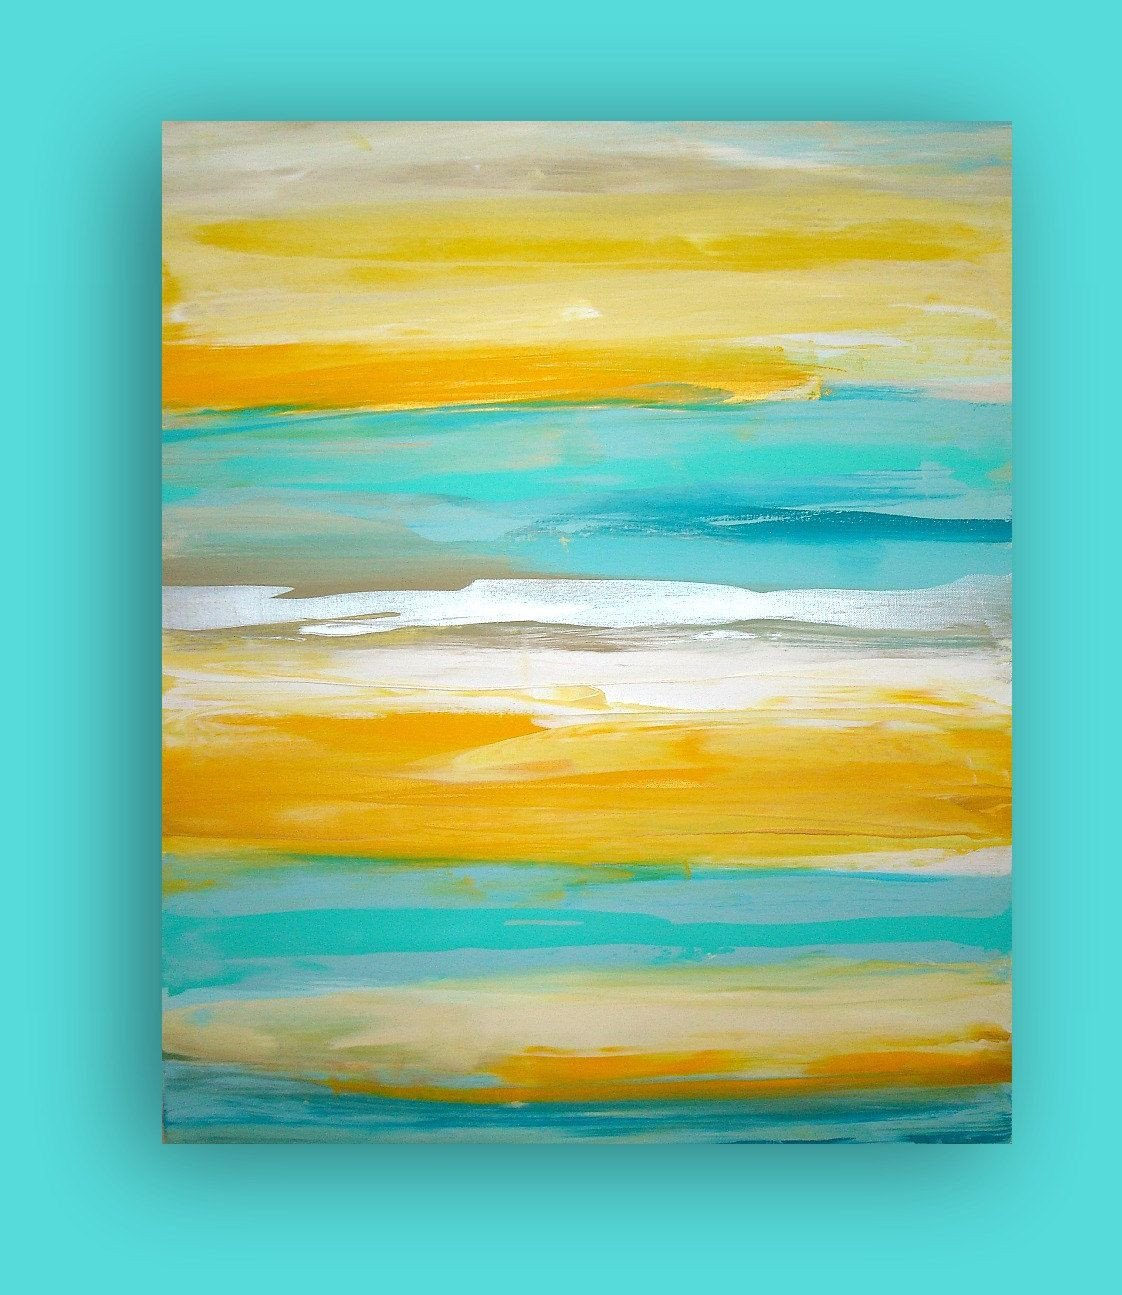 Yellow and Turquoise Bedroom Fresh Art Yellow Turquoise original Abstract Painting Modern